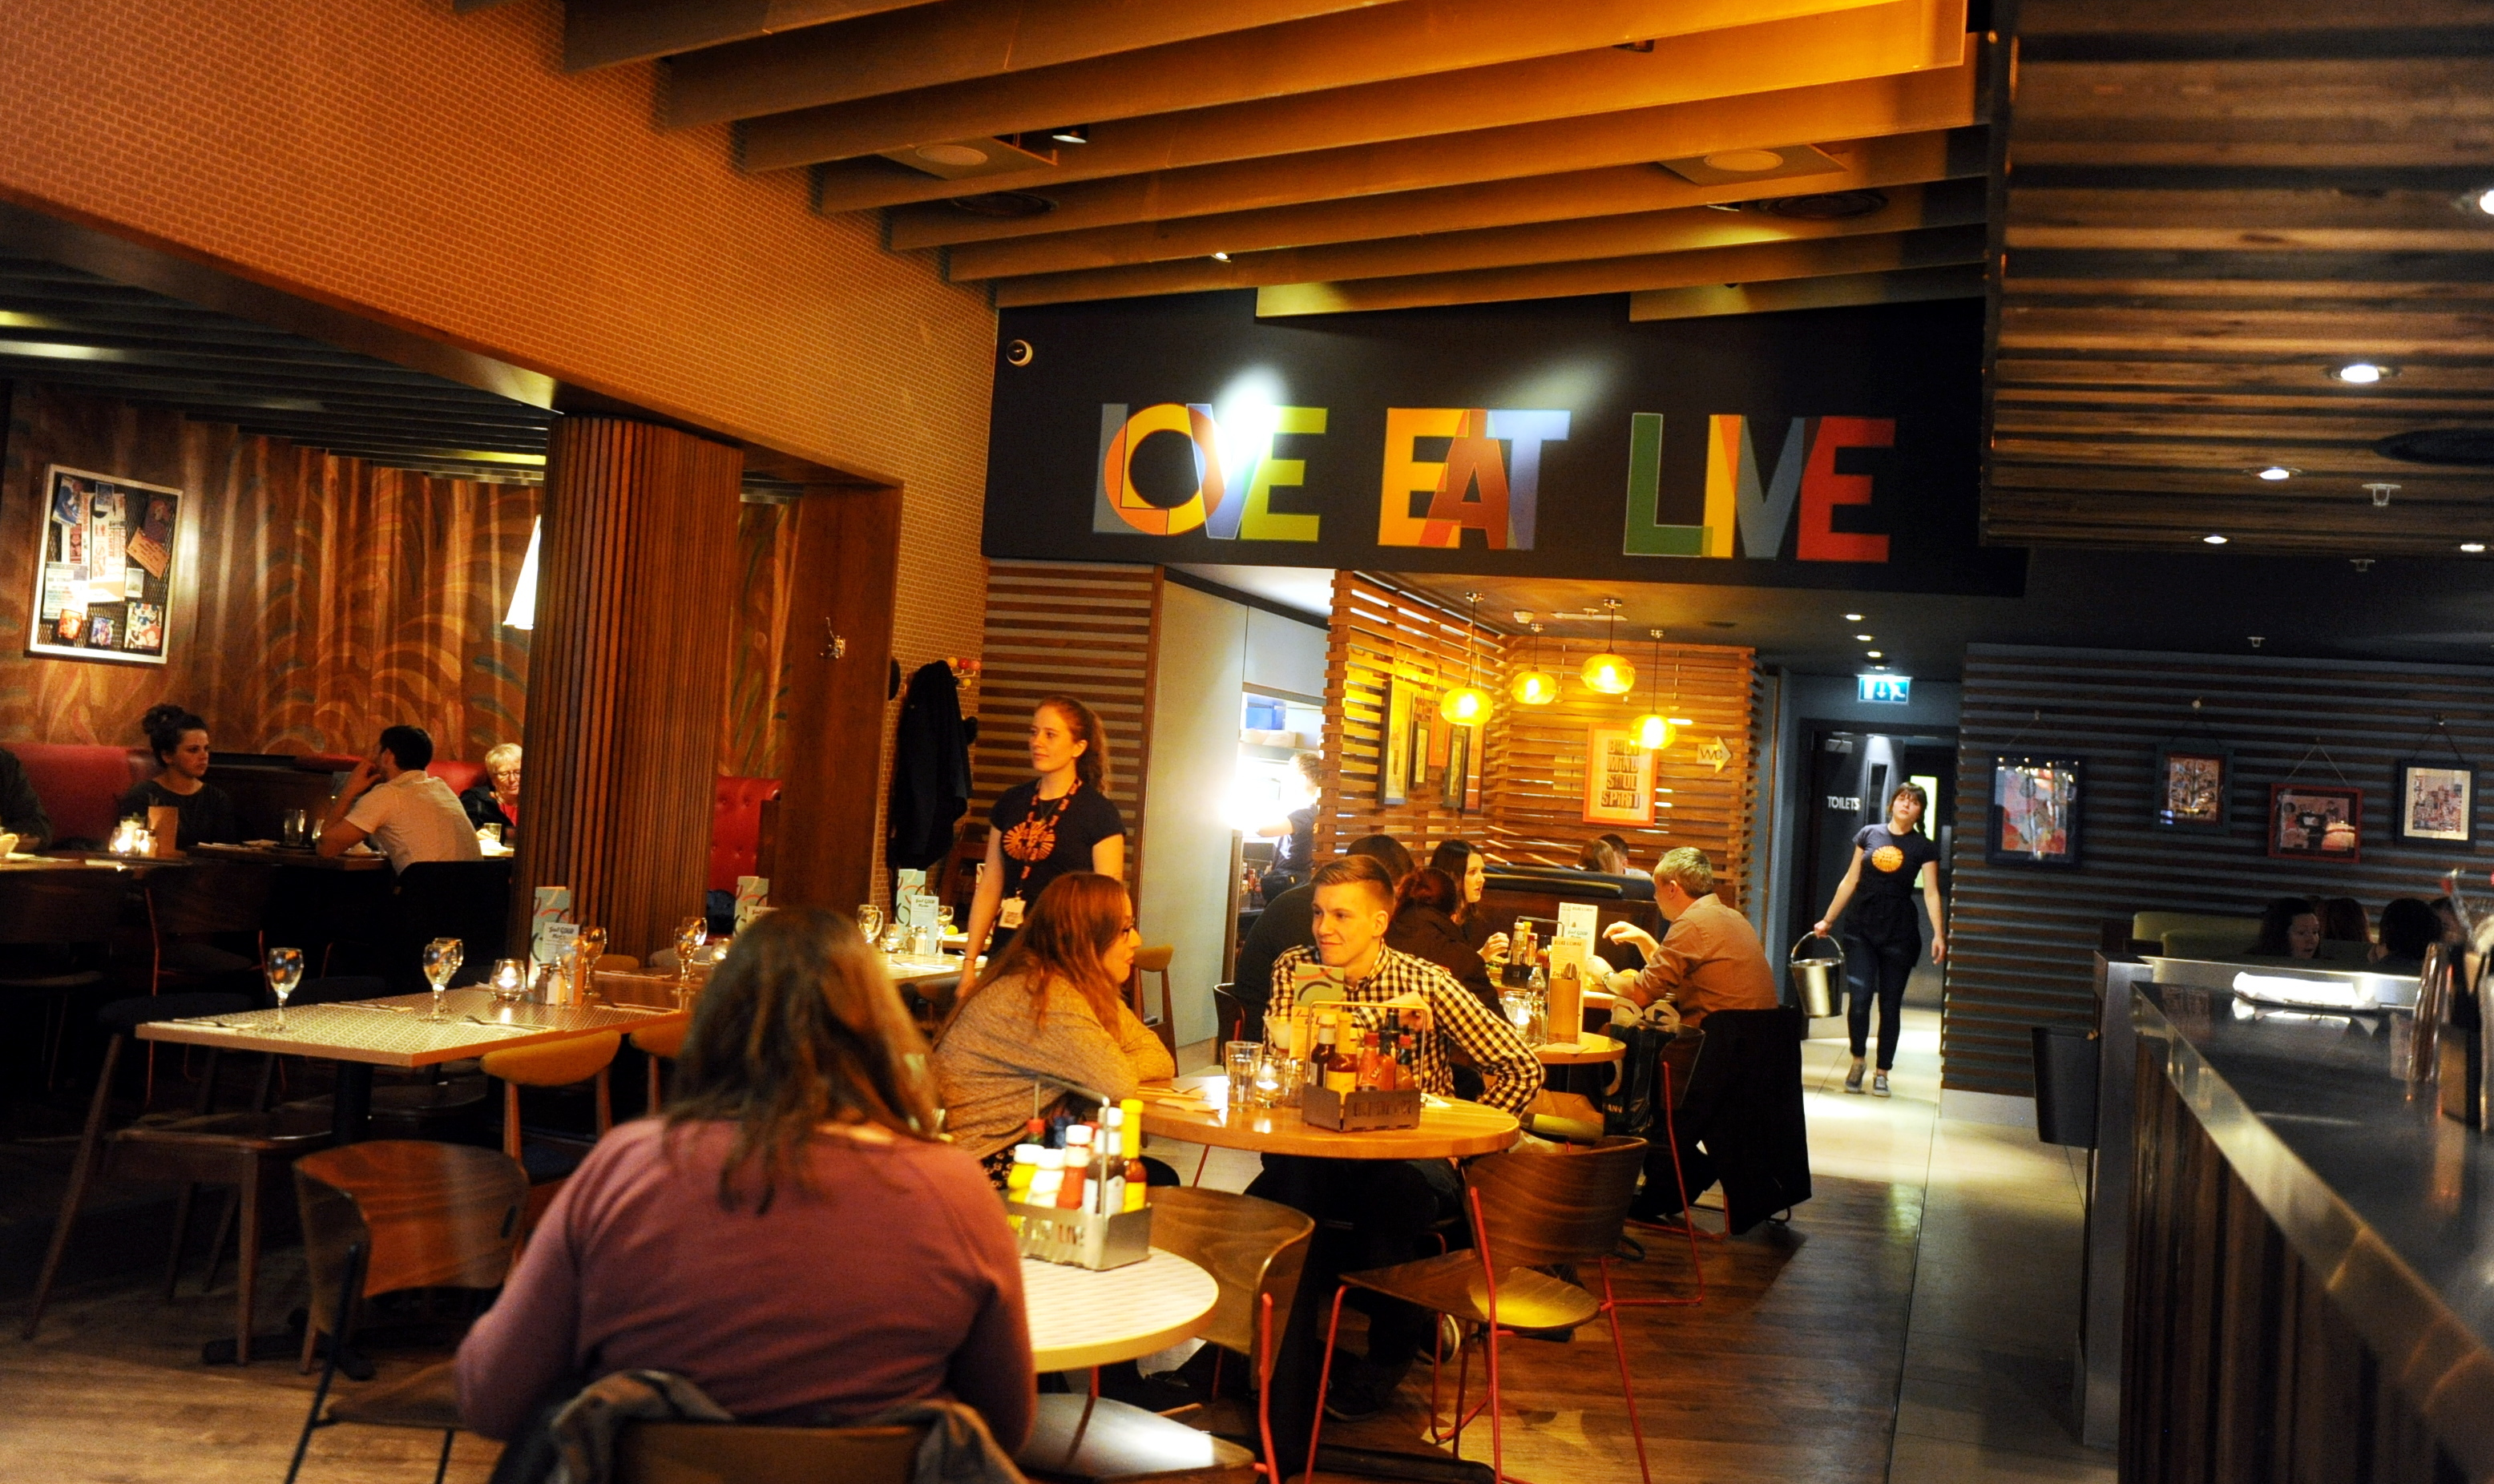 TASTY TREAT:  Customers enjoy a meal out at Giraffe in Union Square.